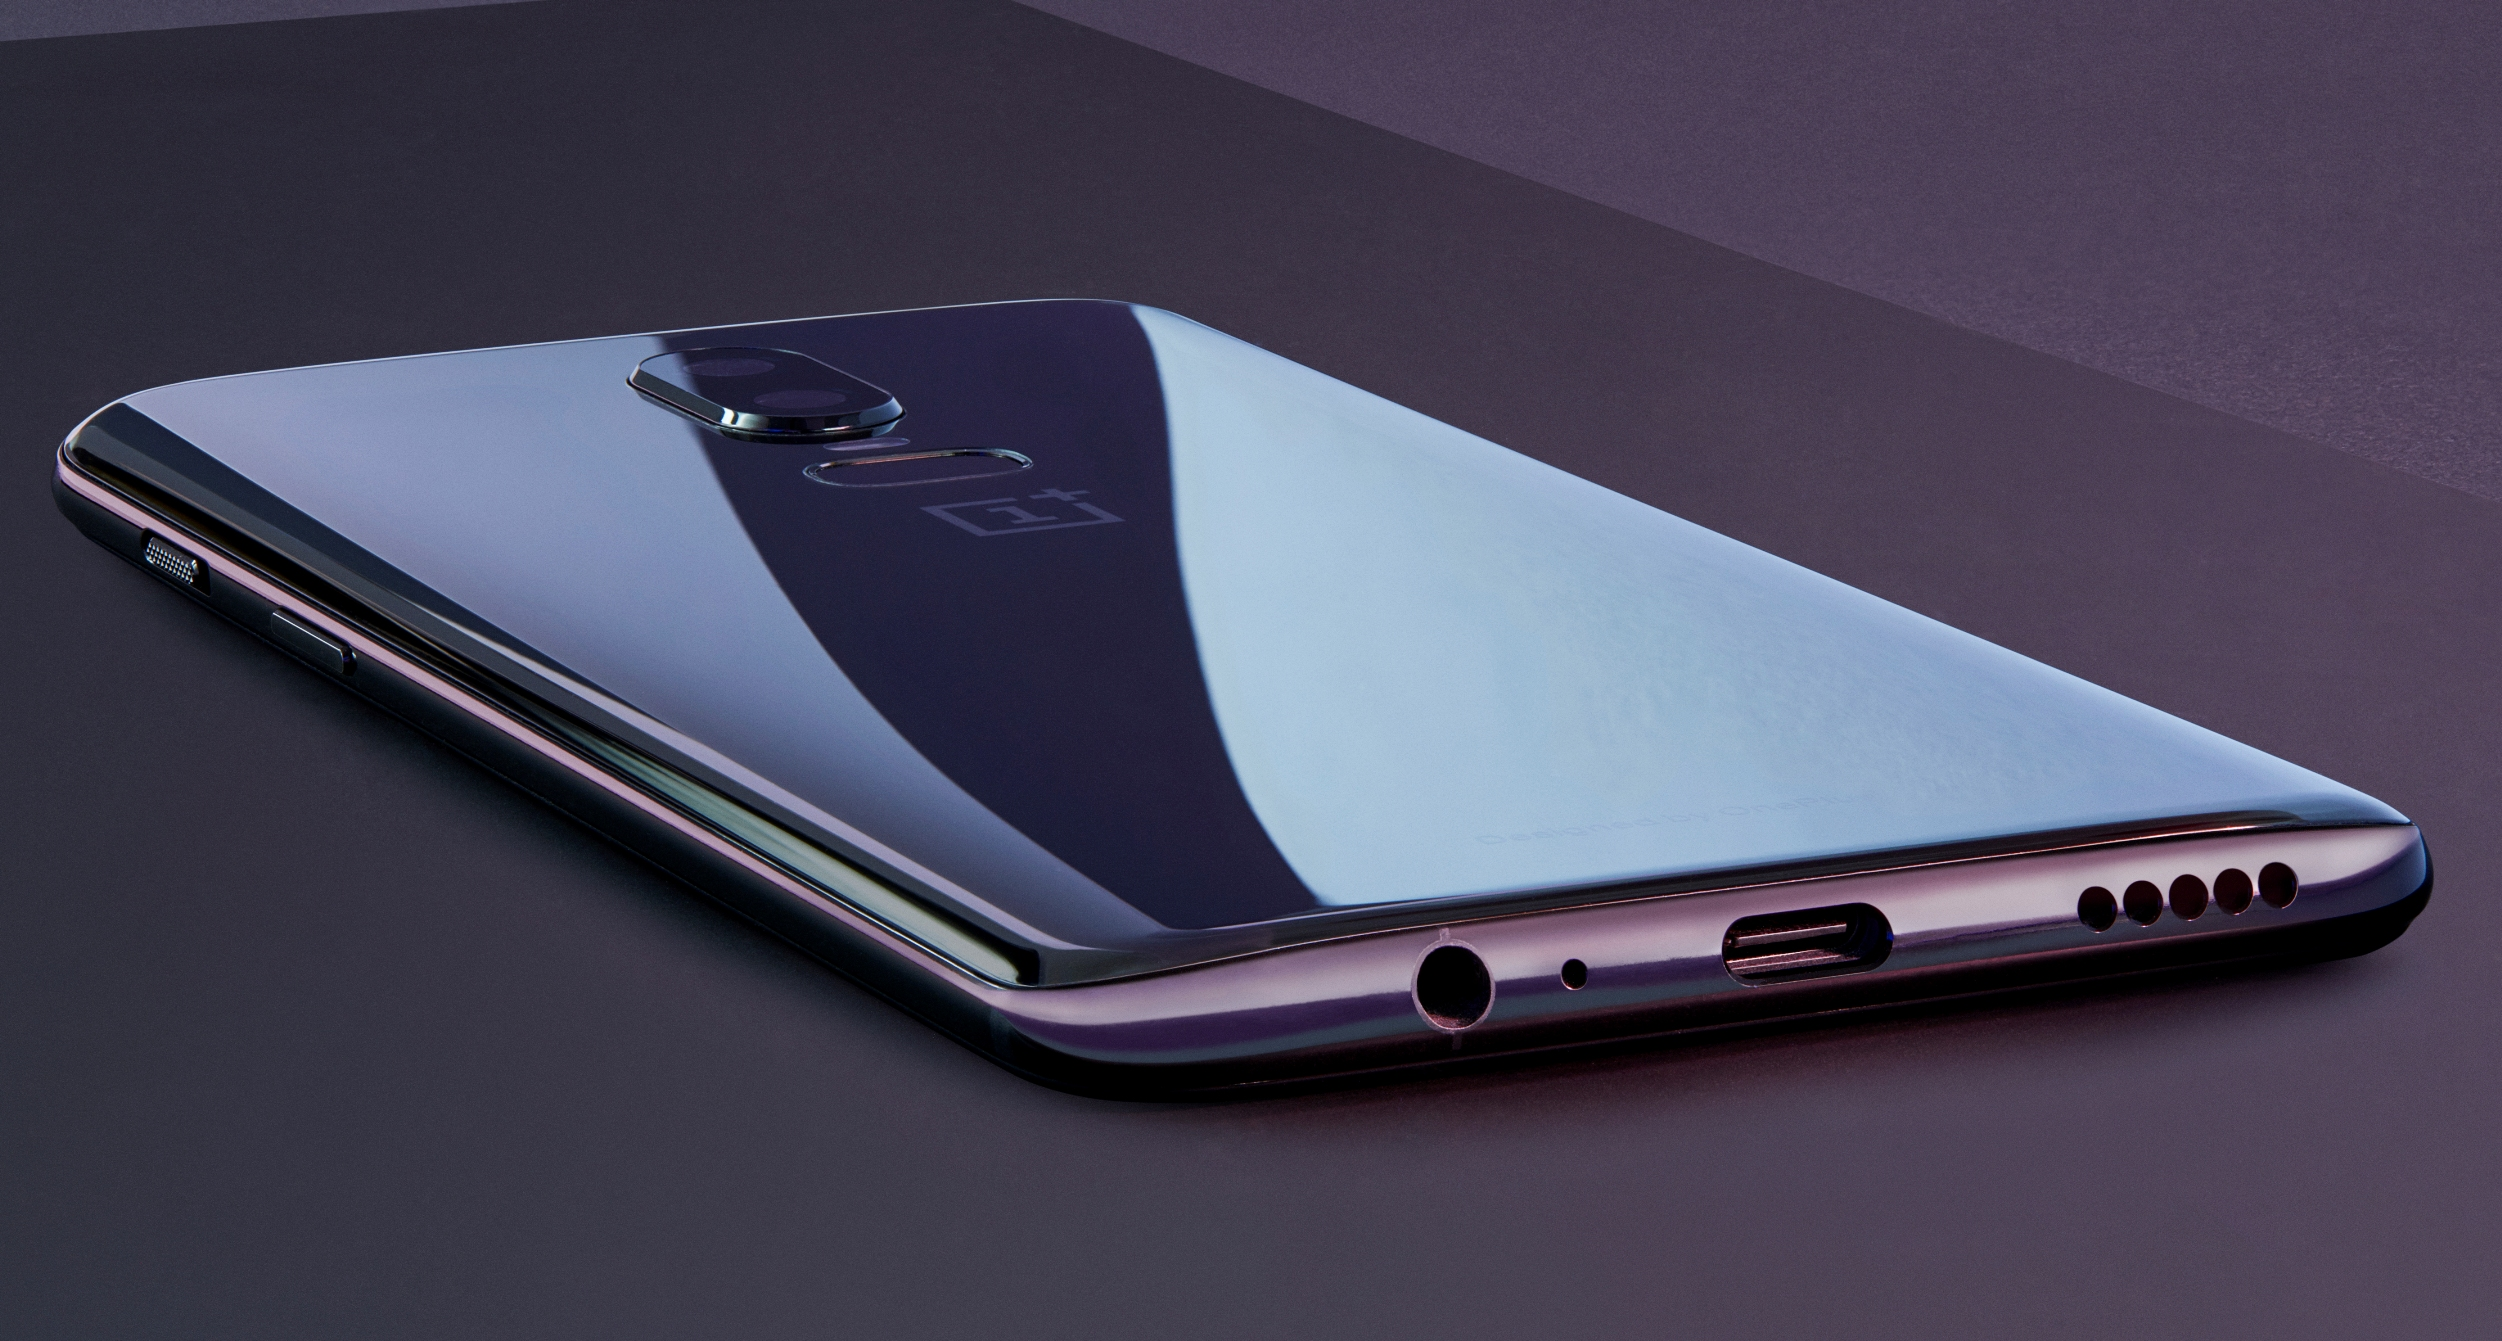 OnePlus will launch a 5G phone in 2019, working with US